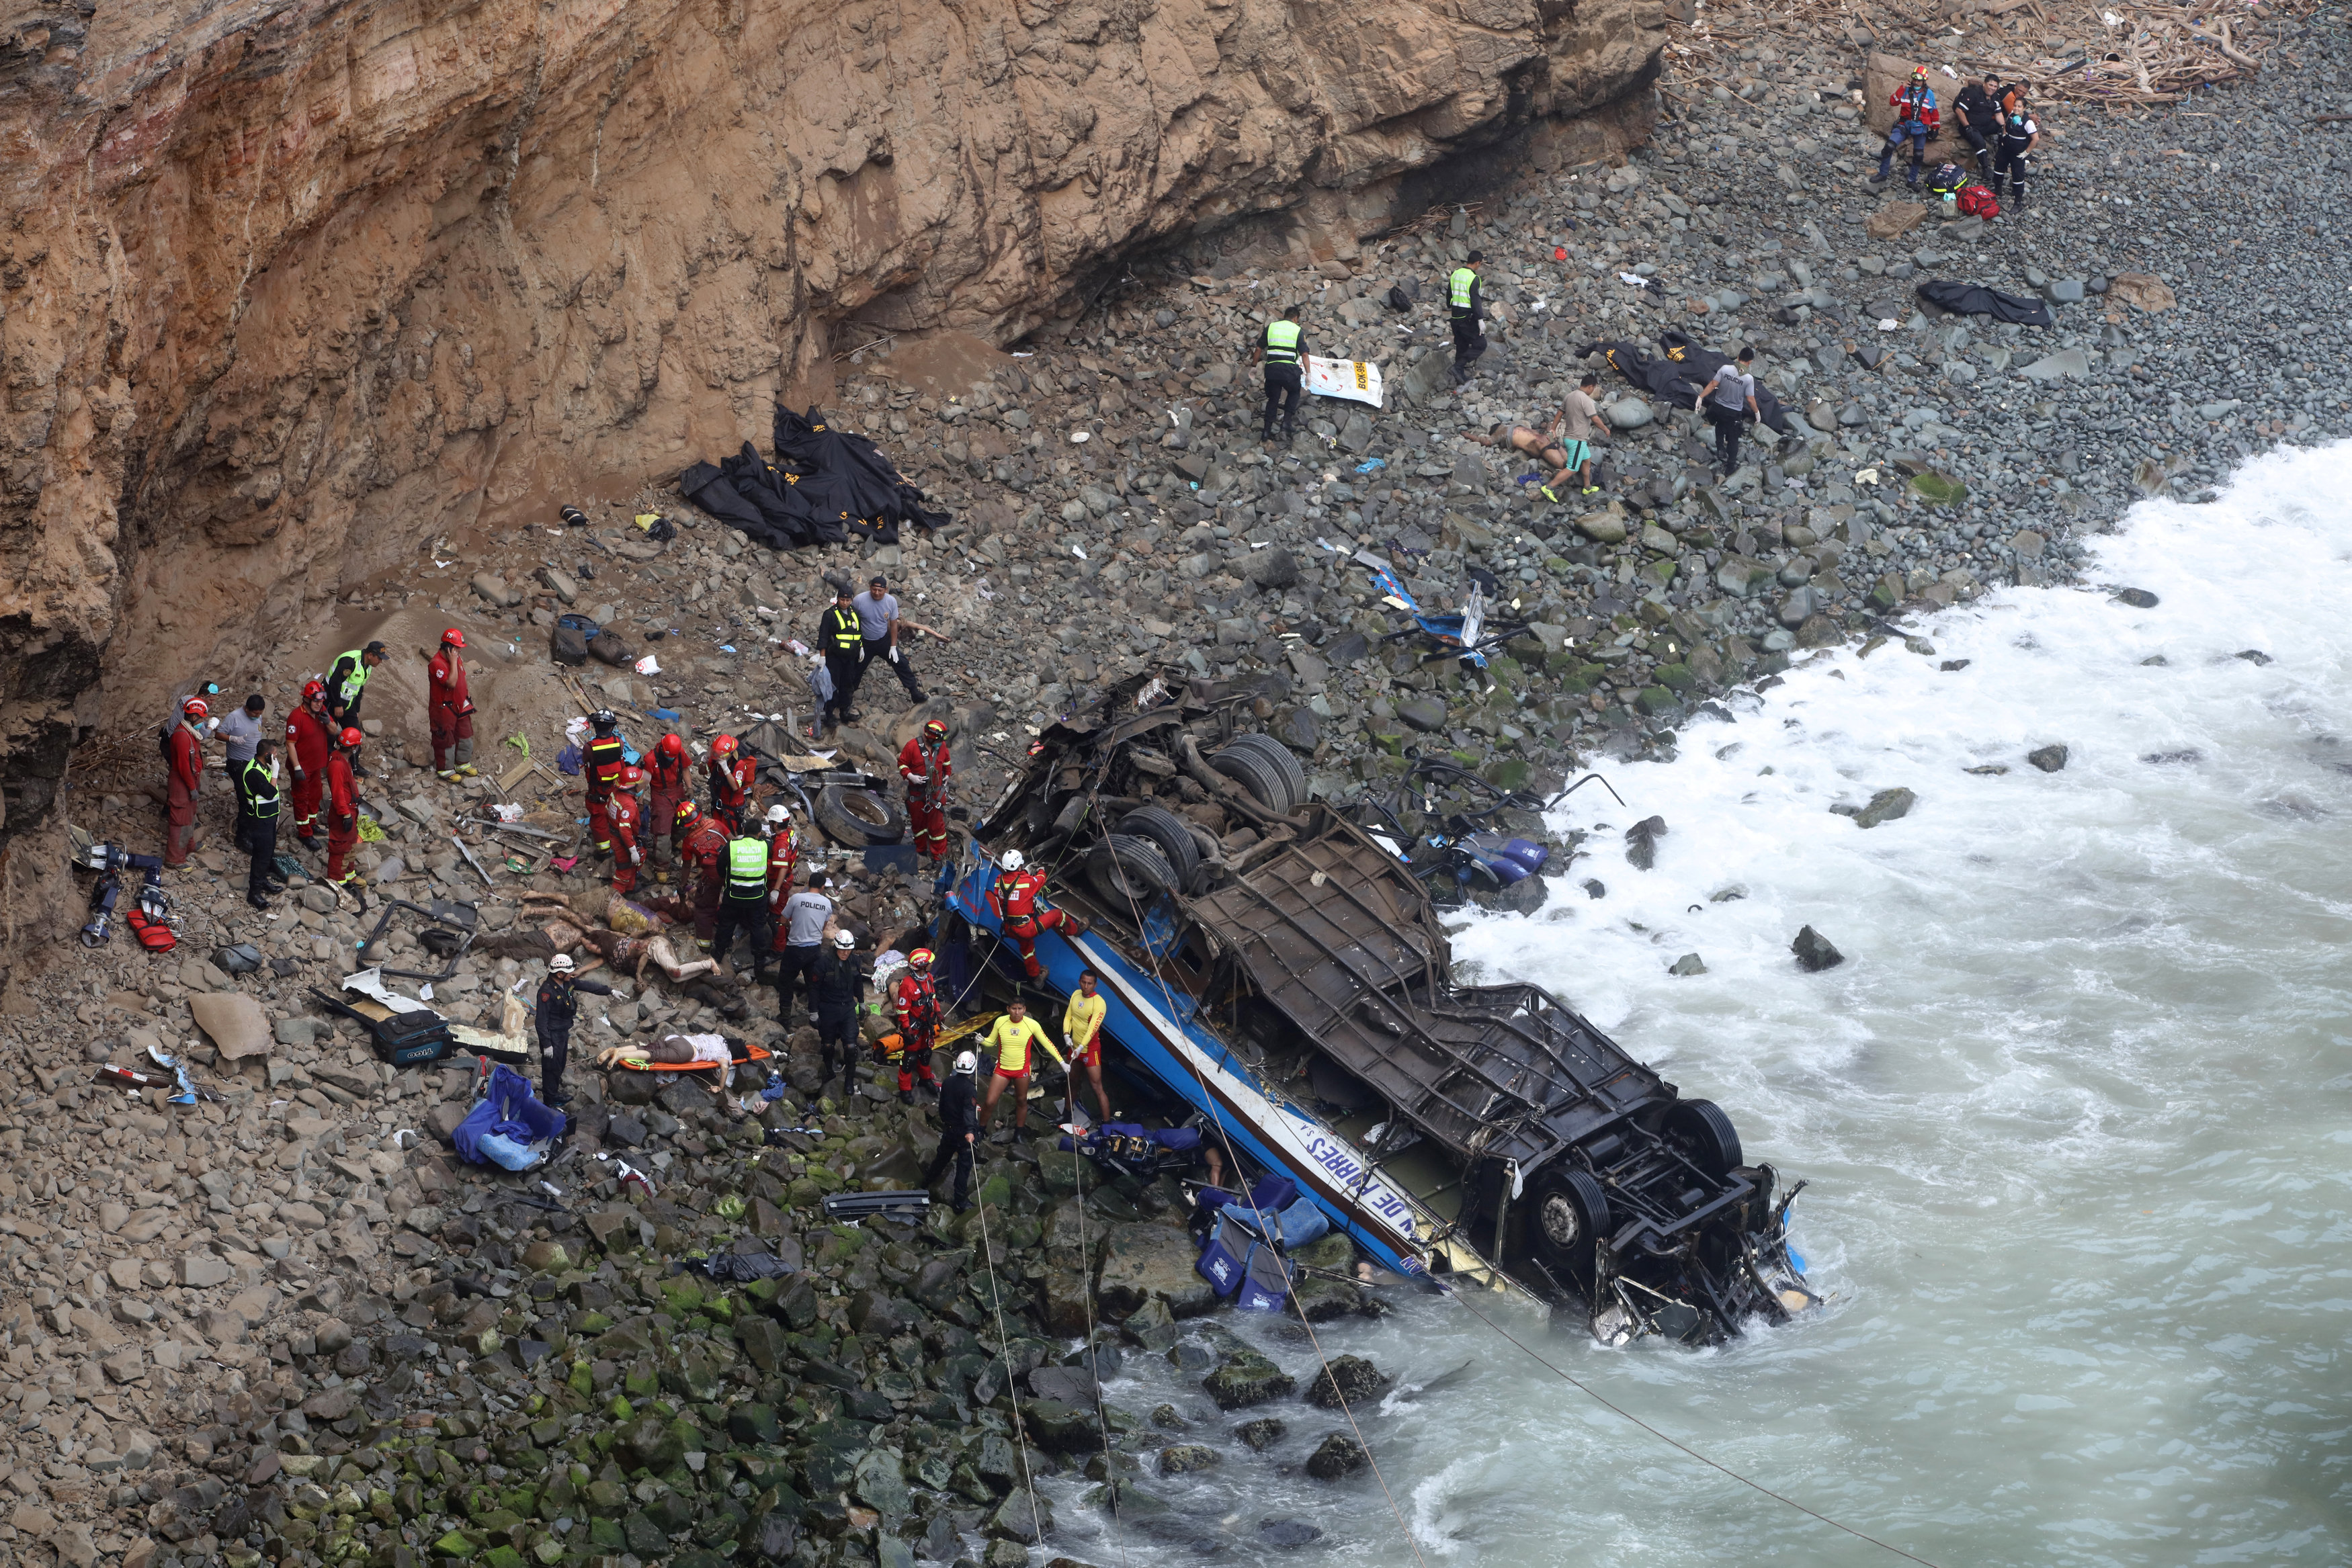 48 killed as bus careens off cliff in Peru